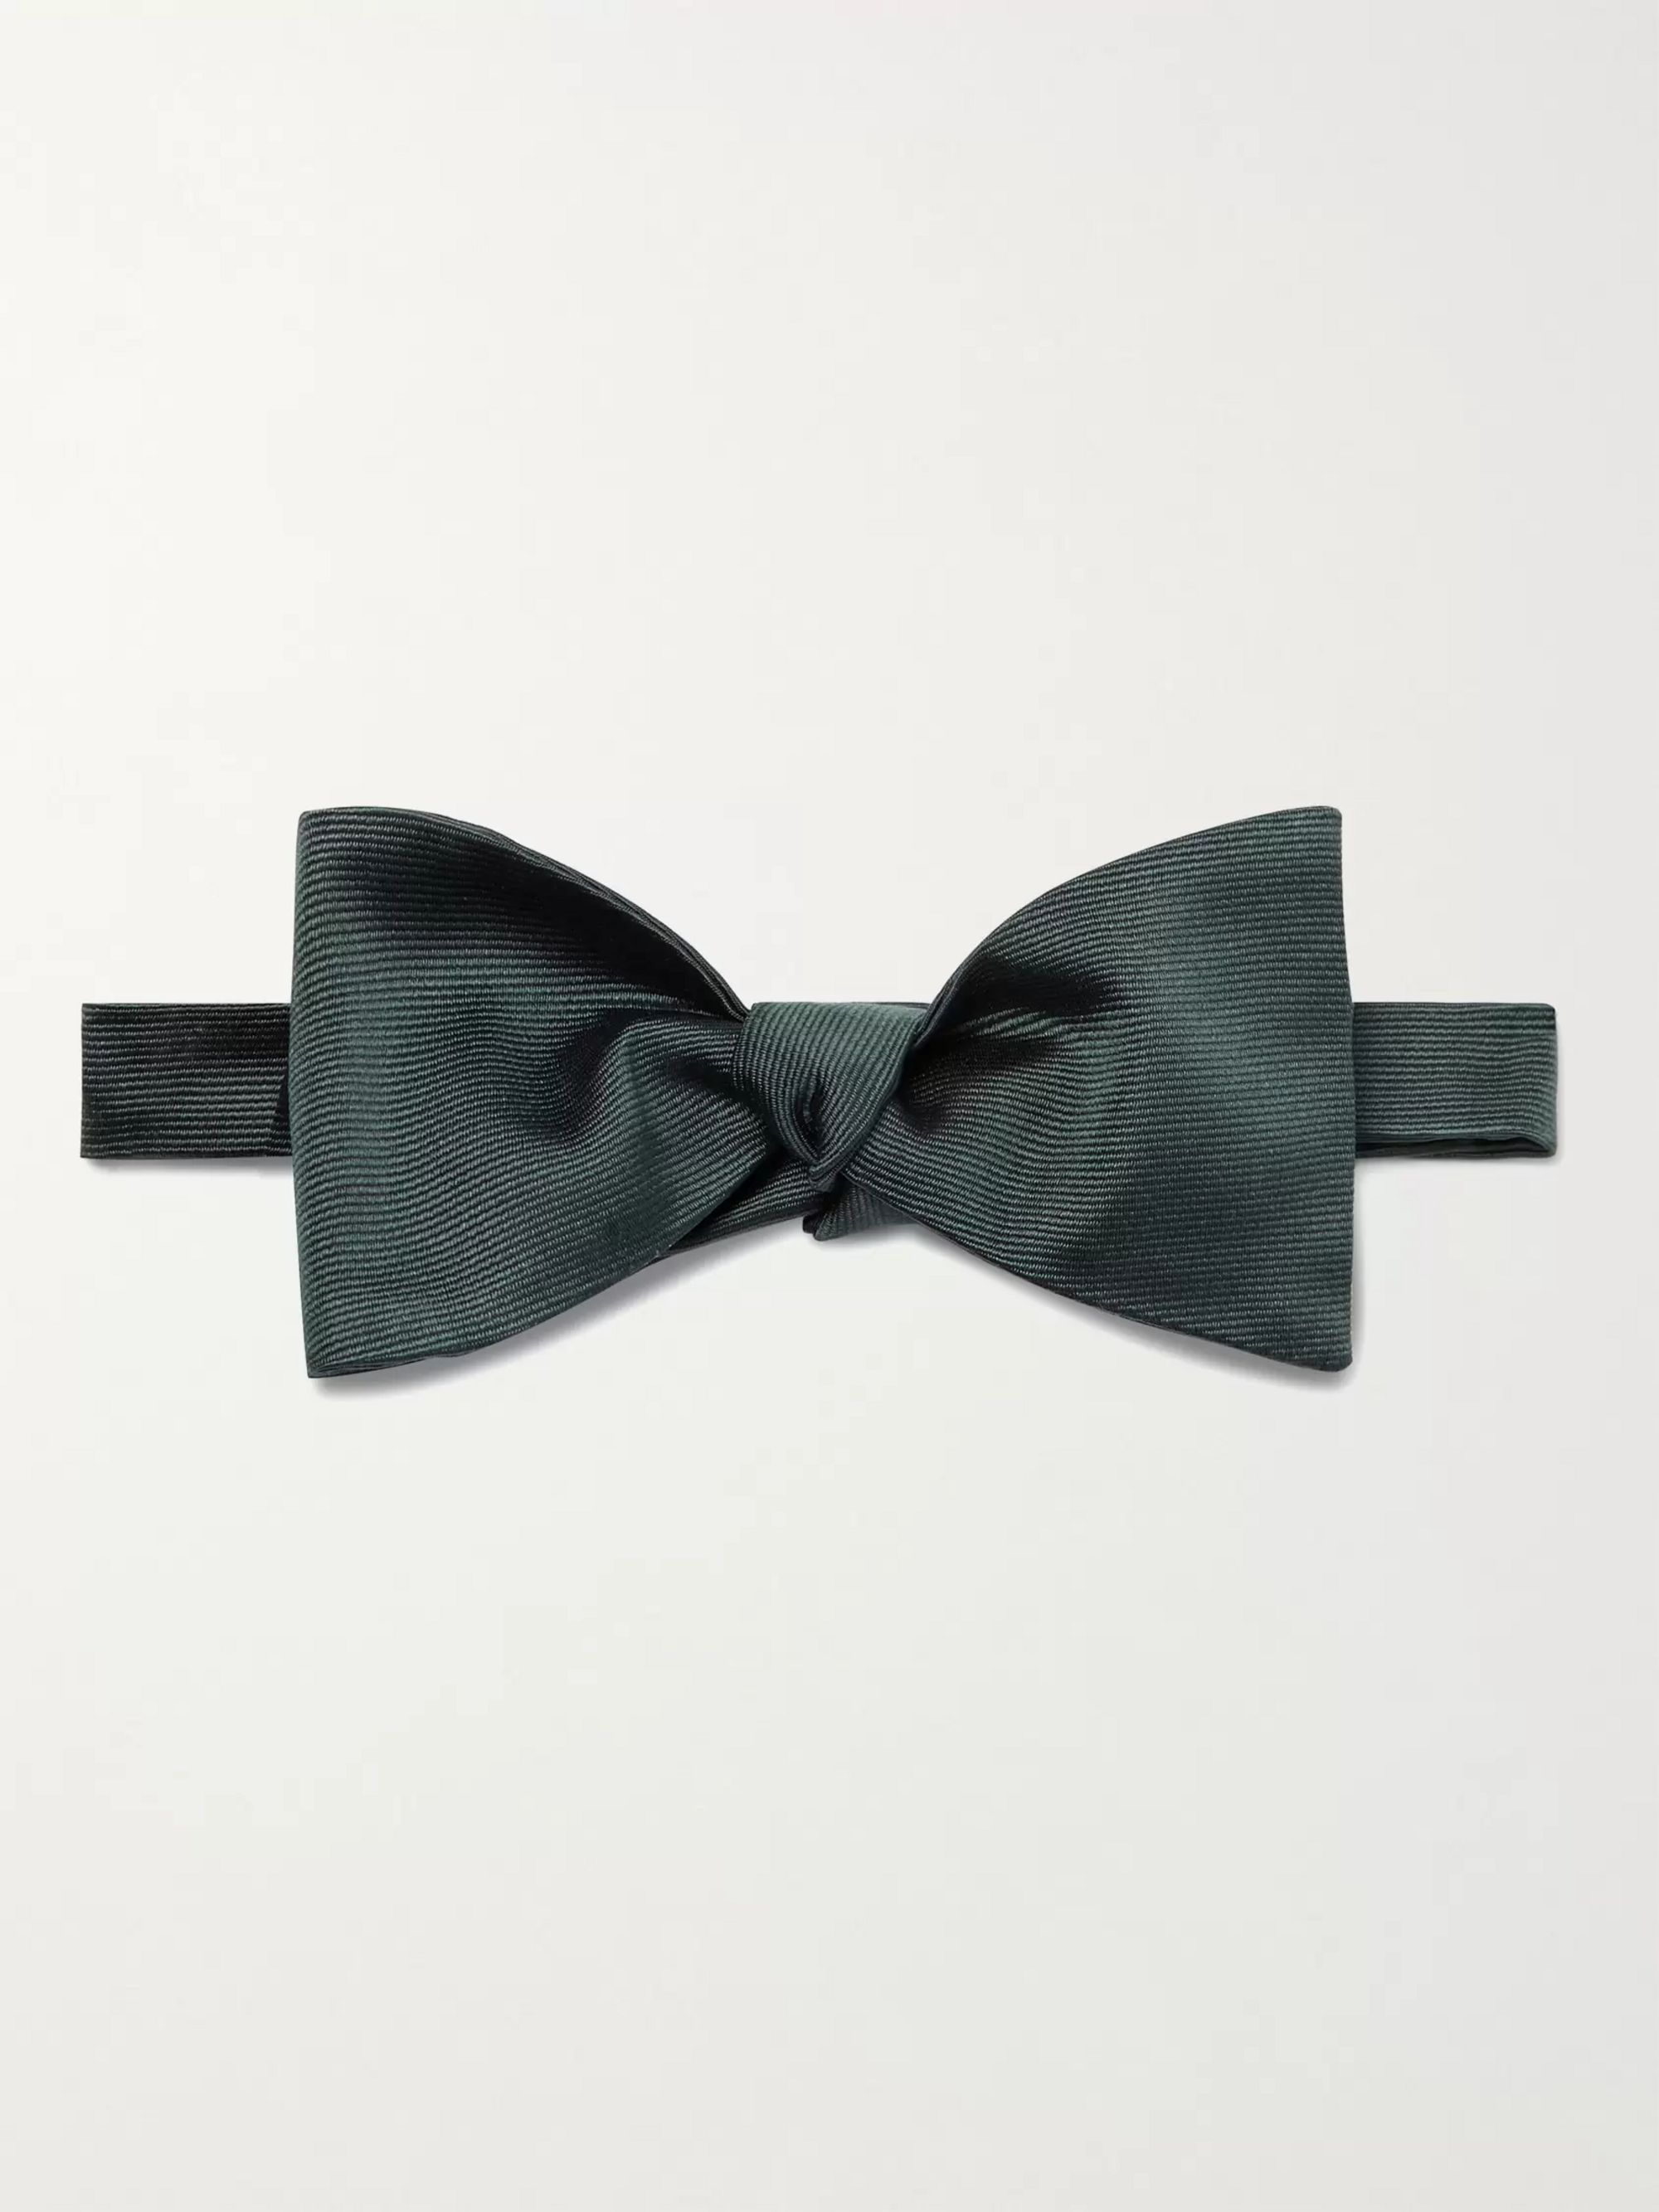 폴 스미스 Paul Smith Self-Tie Silk-Grosgrain Bow Tie,Dark green